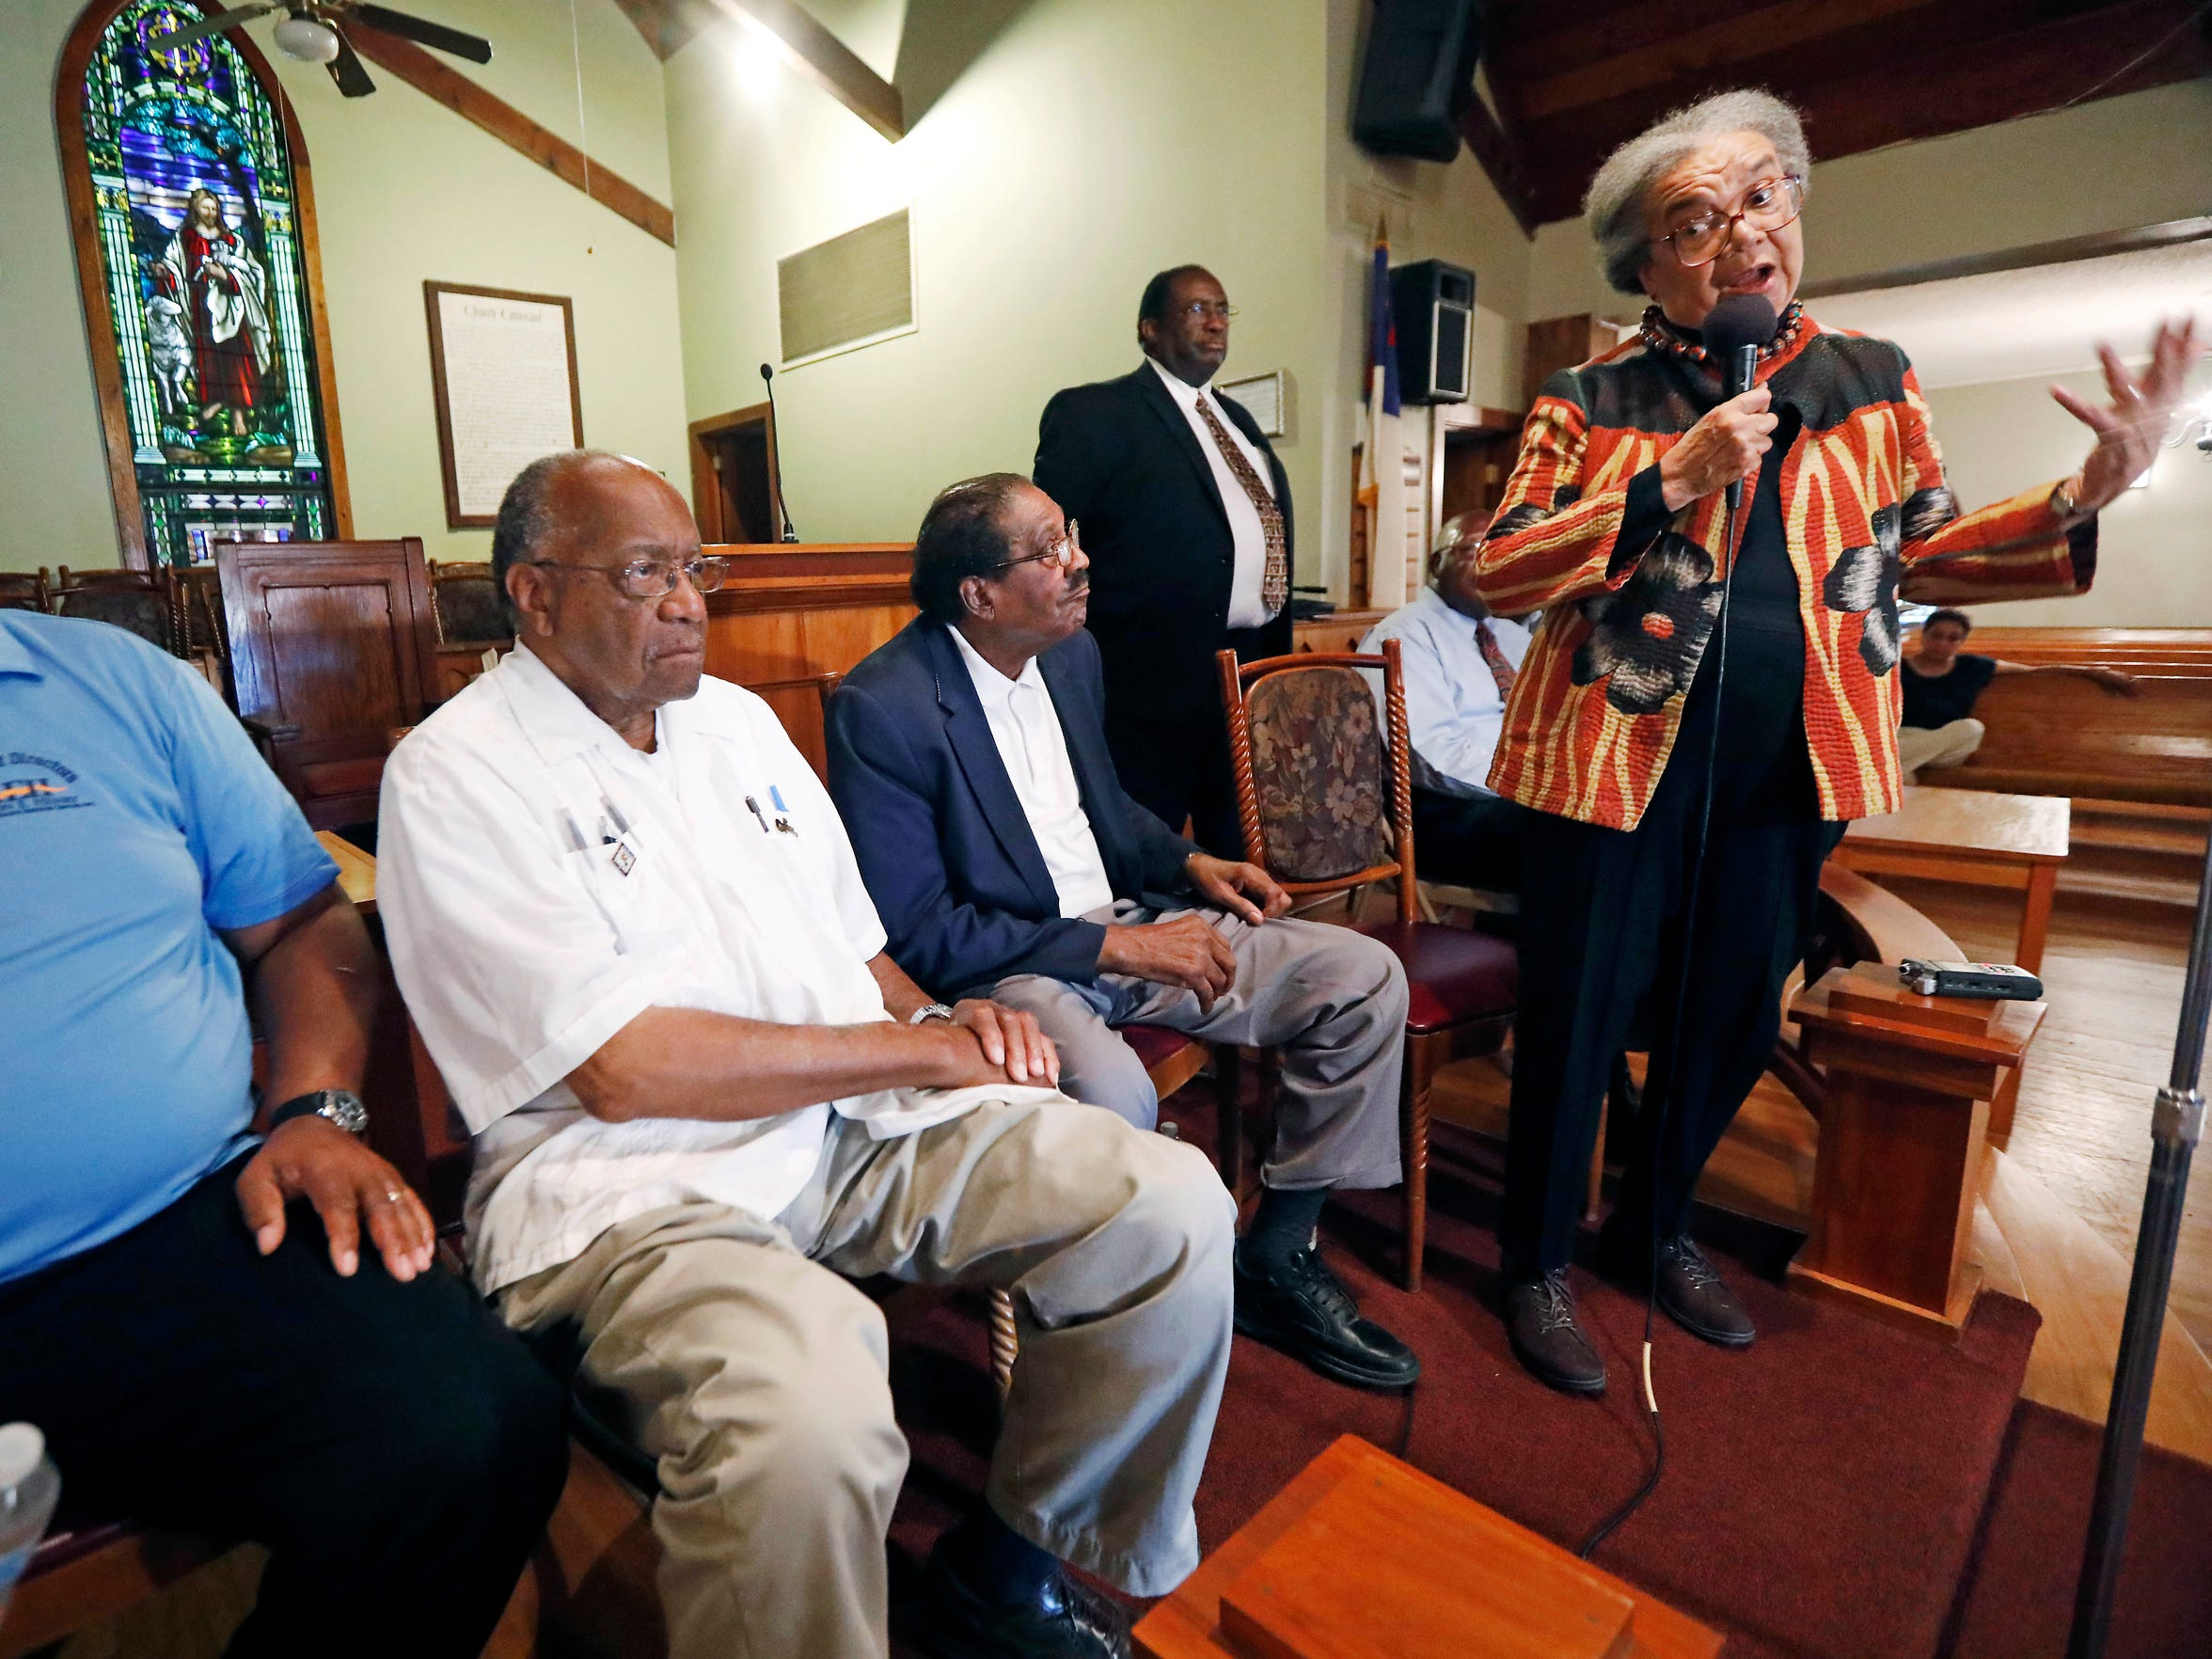 In this July 11, 2017 photograph, Marian Wright Edelman, president and founder of the Children's Defense Fund, a national group that advocates for social services for the poor, addresses elected officials, including from left, state Sens. Robert Jackson, D-Marks, David Jordan, D-Greenwood and retired Rep. Robert Clark, D-Ebenezer, local leaders and some members of the Jonestown, Miss. Edelman recently returned to Mississippi to examine how poverty continues shaping lives.